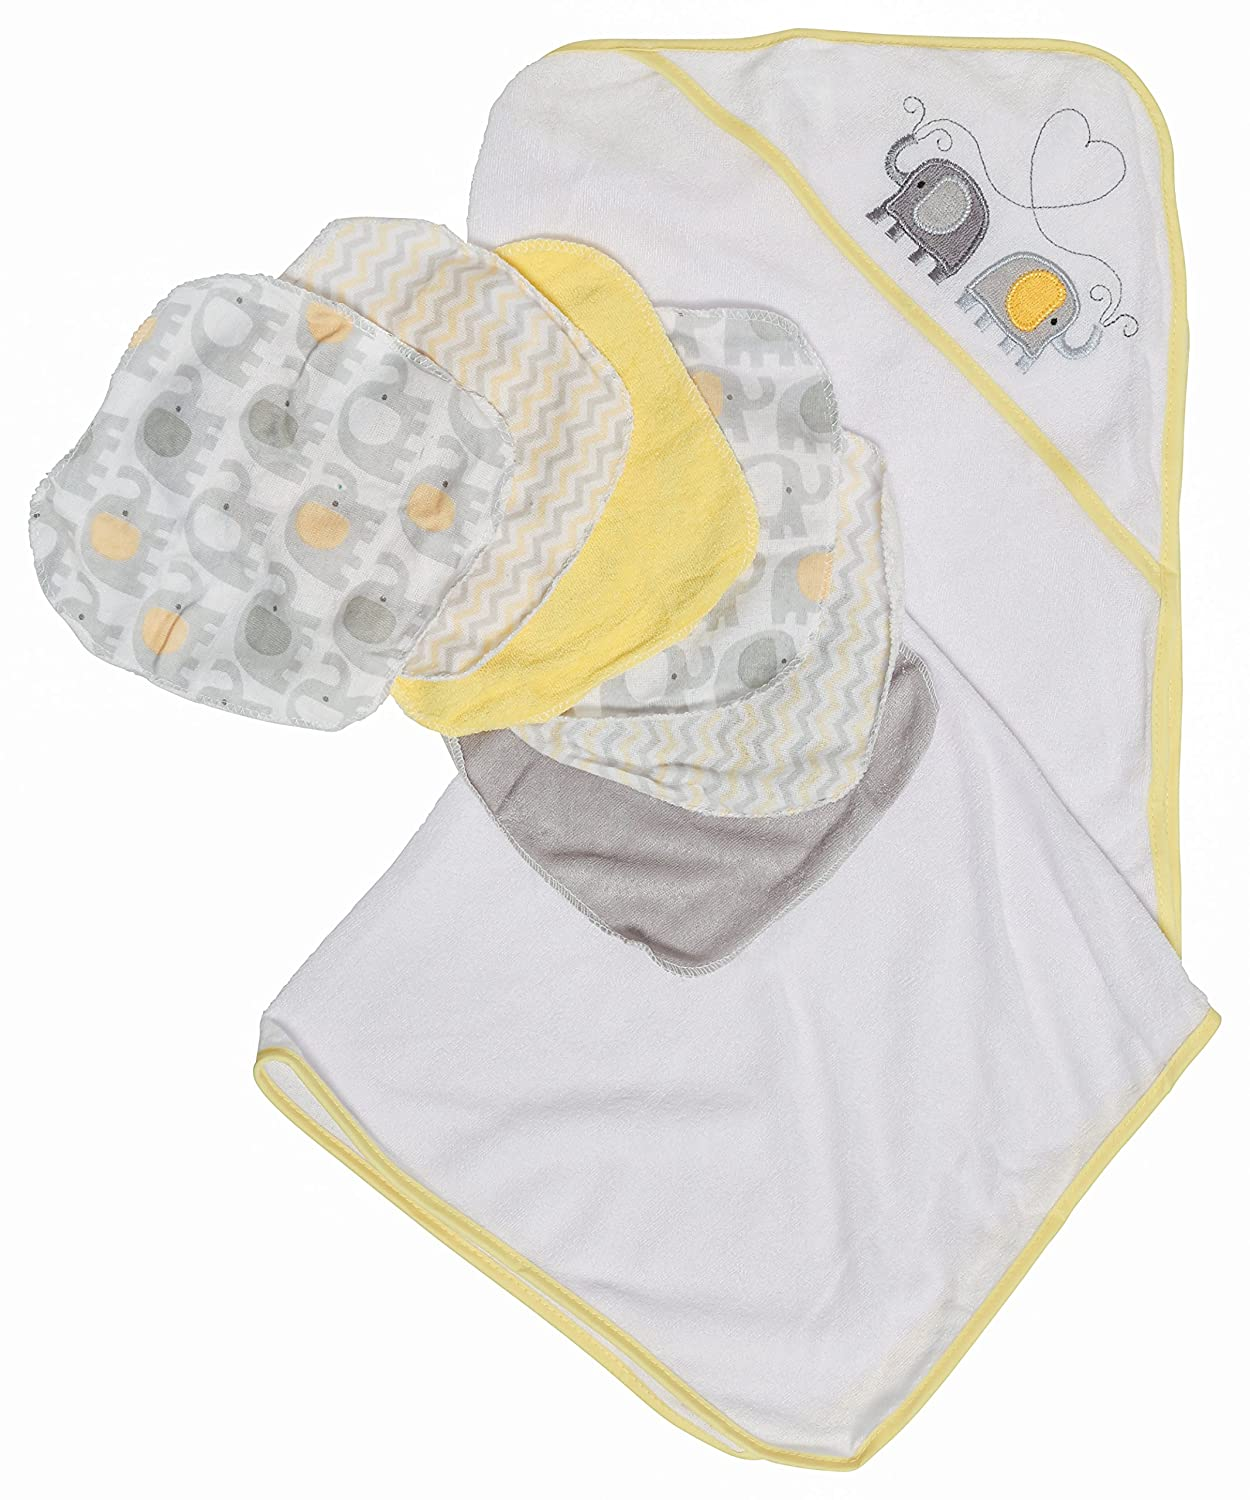 Little Beginnings Elephant Print Hooded Towel and Washcloths Gift Set, Yellow Cudlie Accessories GS70834